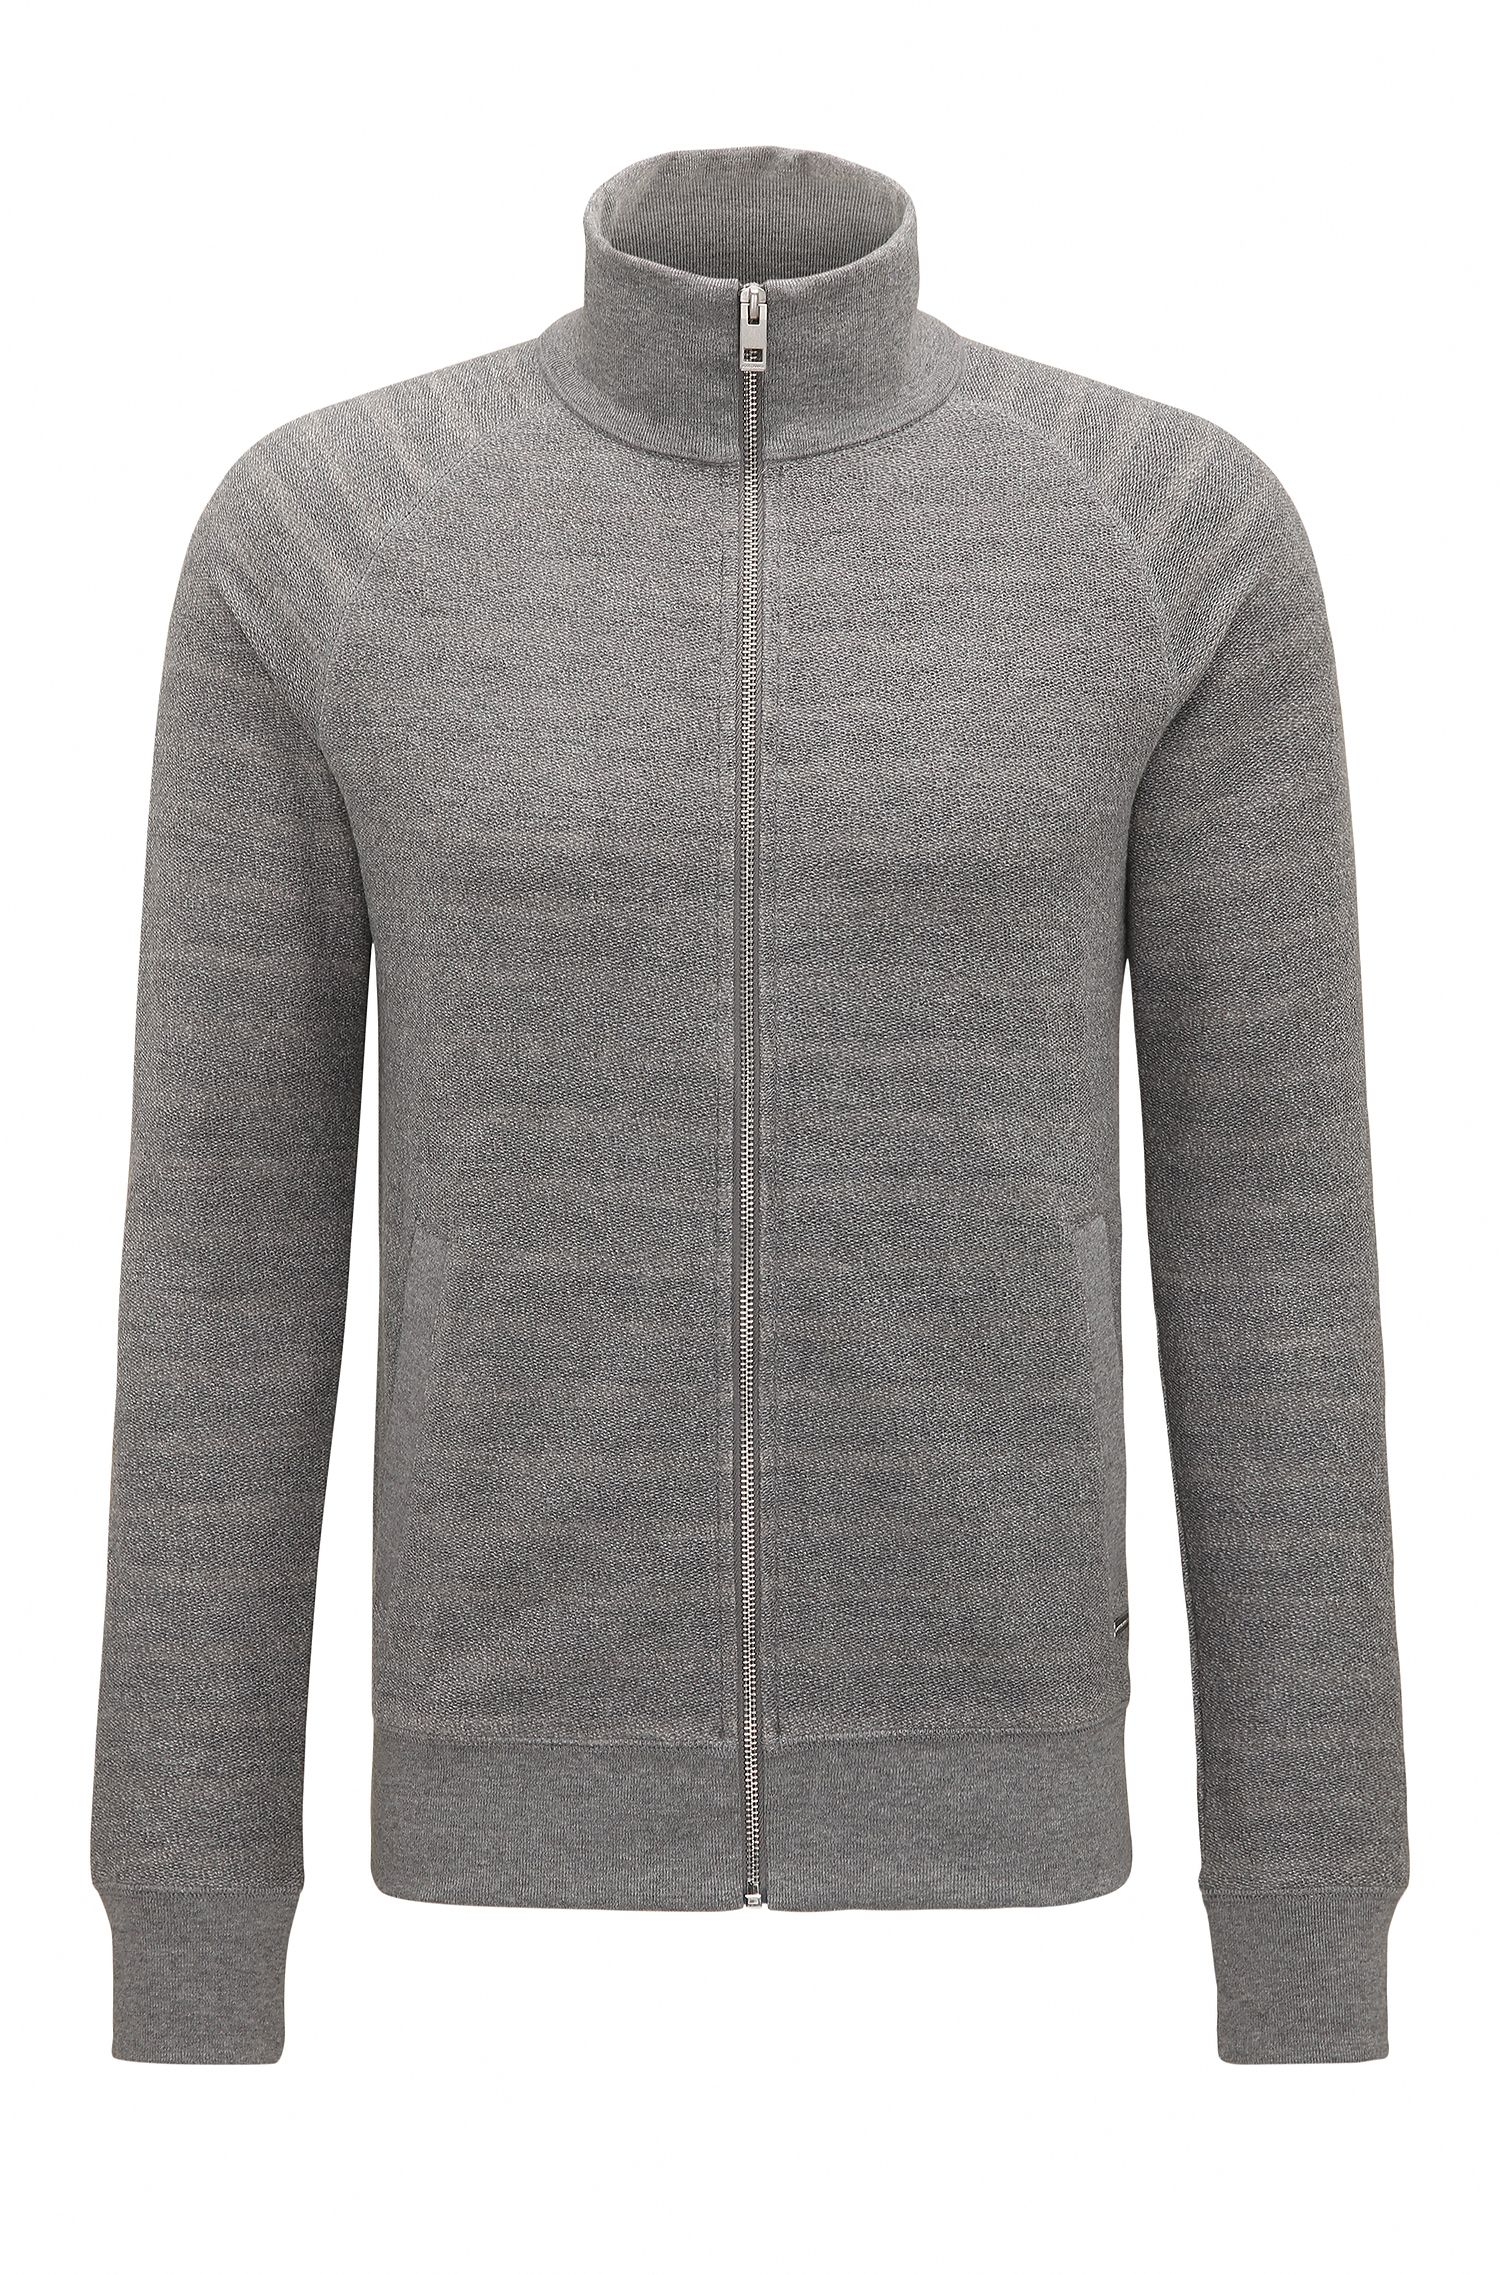 Regular-fit zip-through sweatshirt in French terry